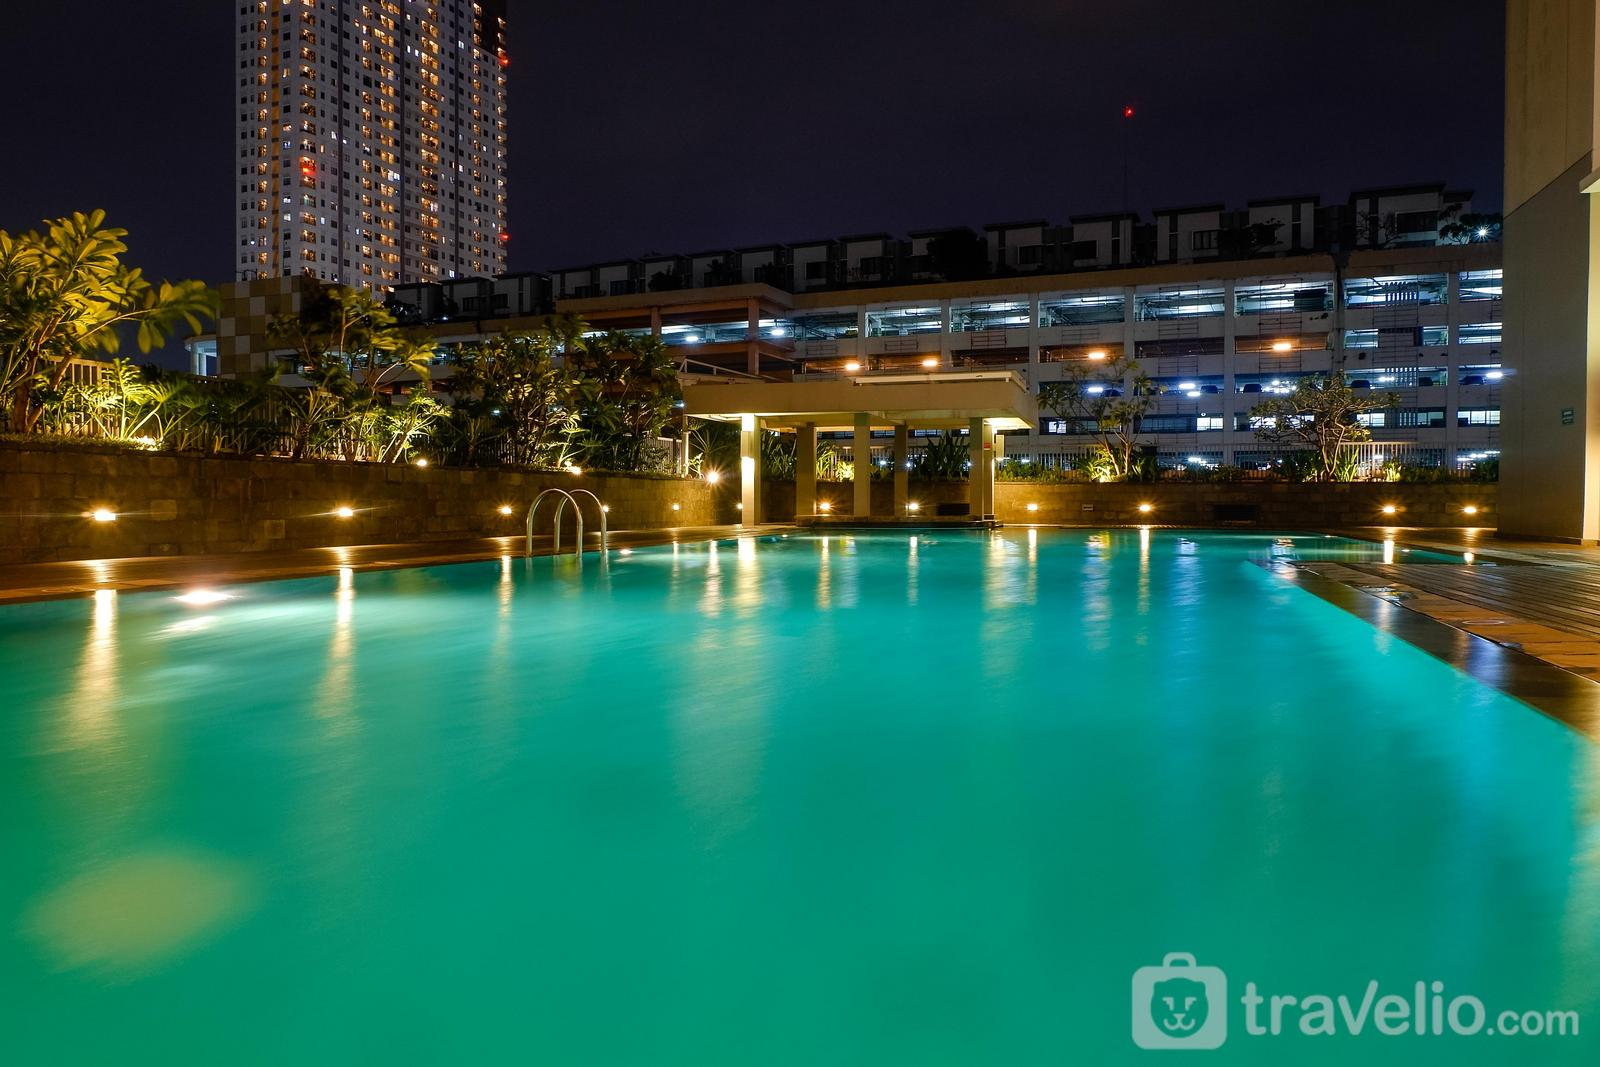 Thamrin Executive - 1BR Near Grand Indonesia Thamrin Executive Apartment by Travelio